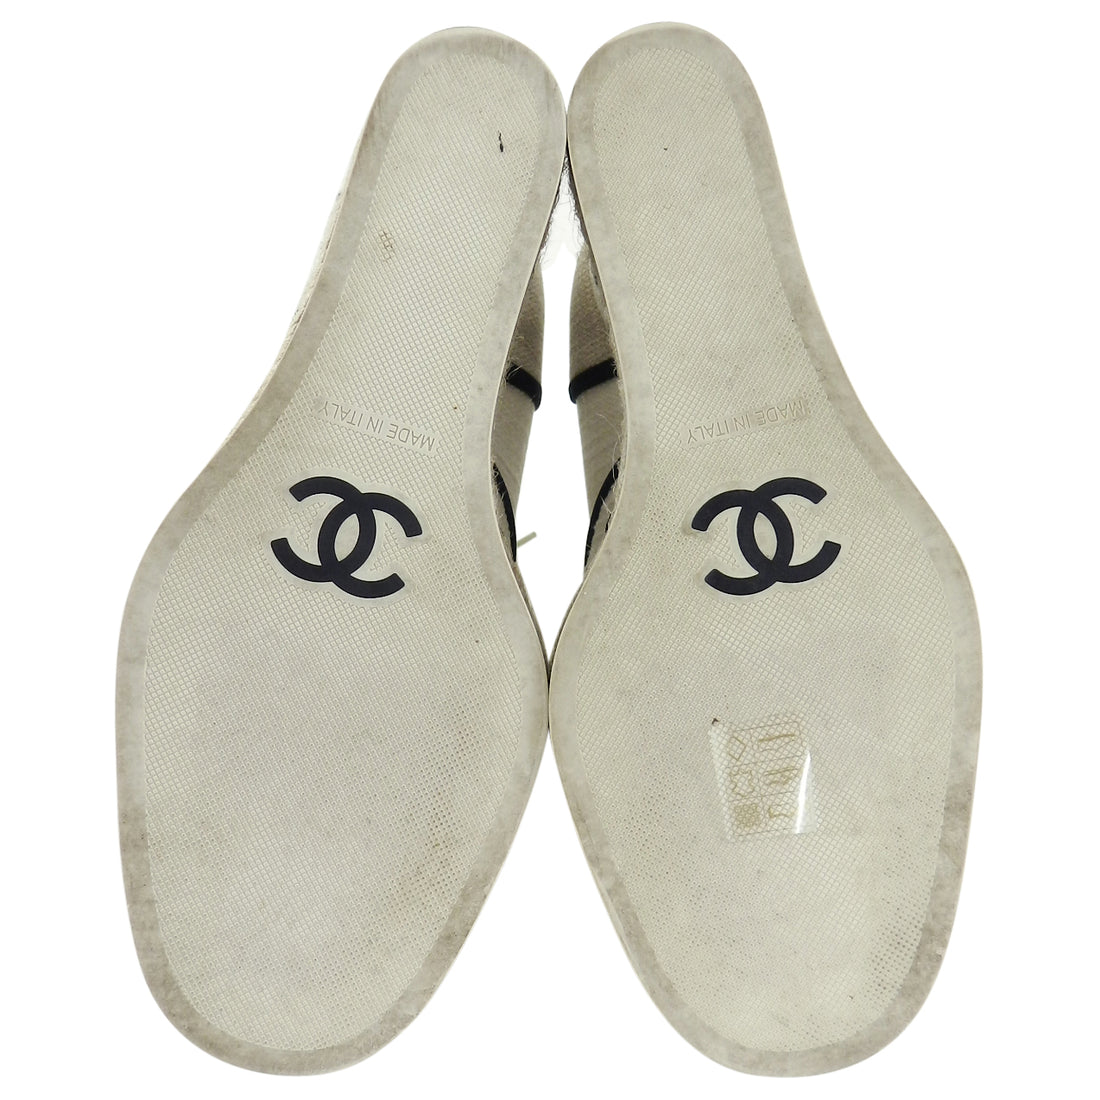 Chanel Ivory and Natural Linen Espadrille Wedge Shoes - 37